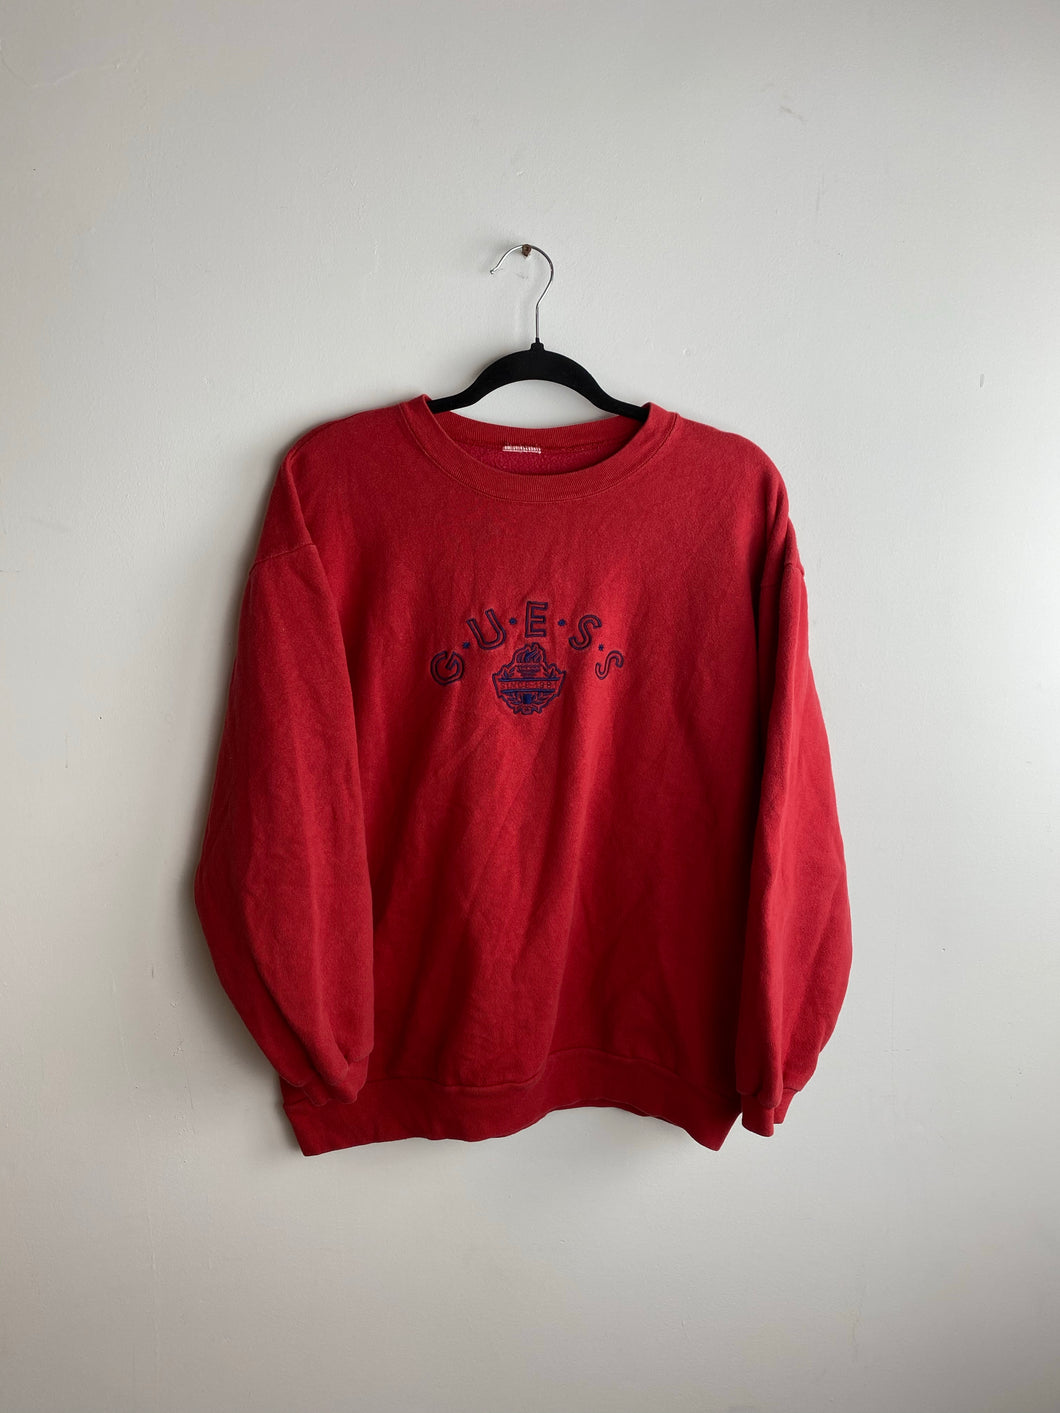 90s embroidered guess crewneck